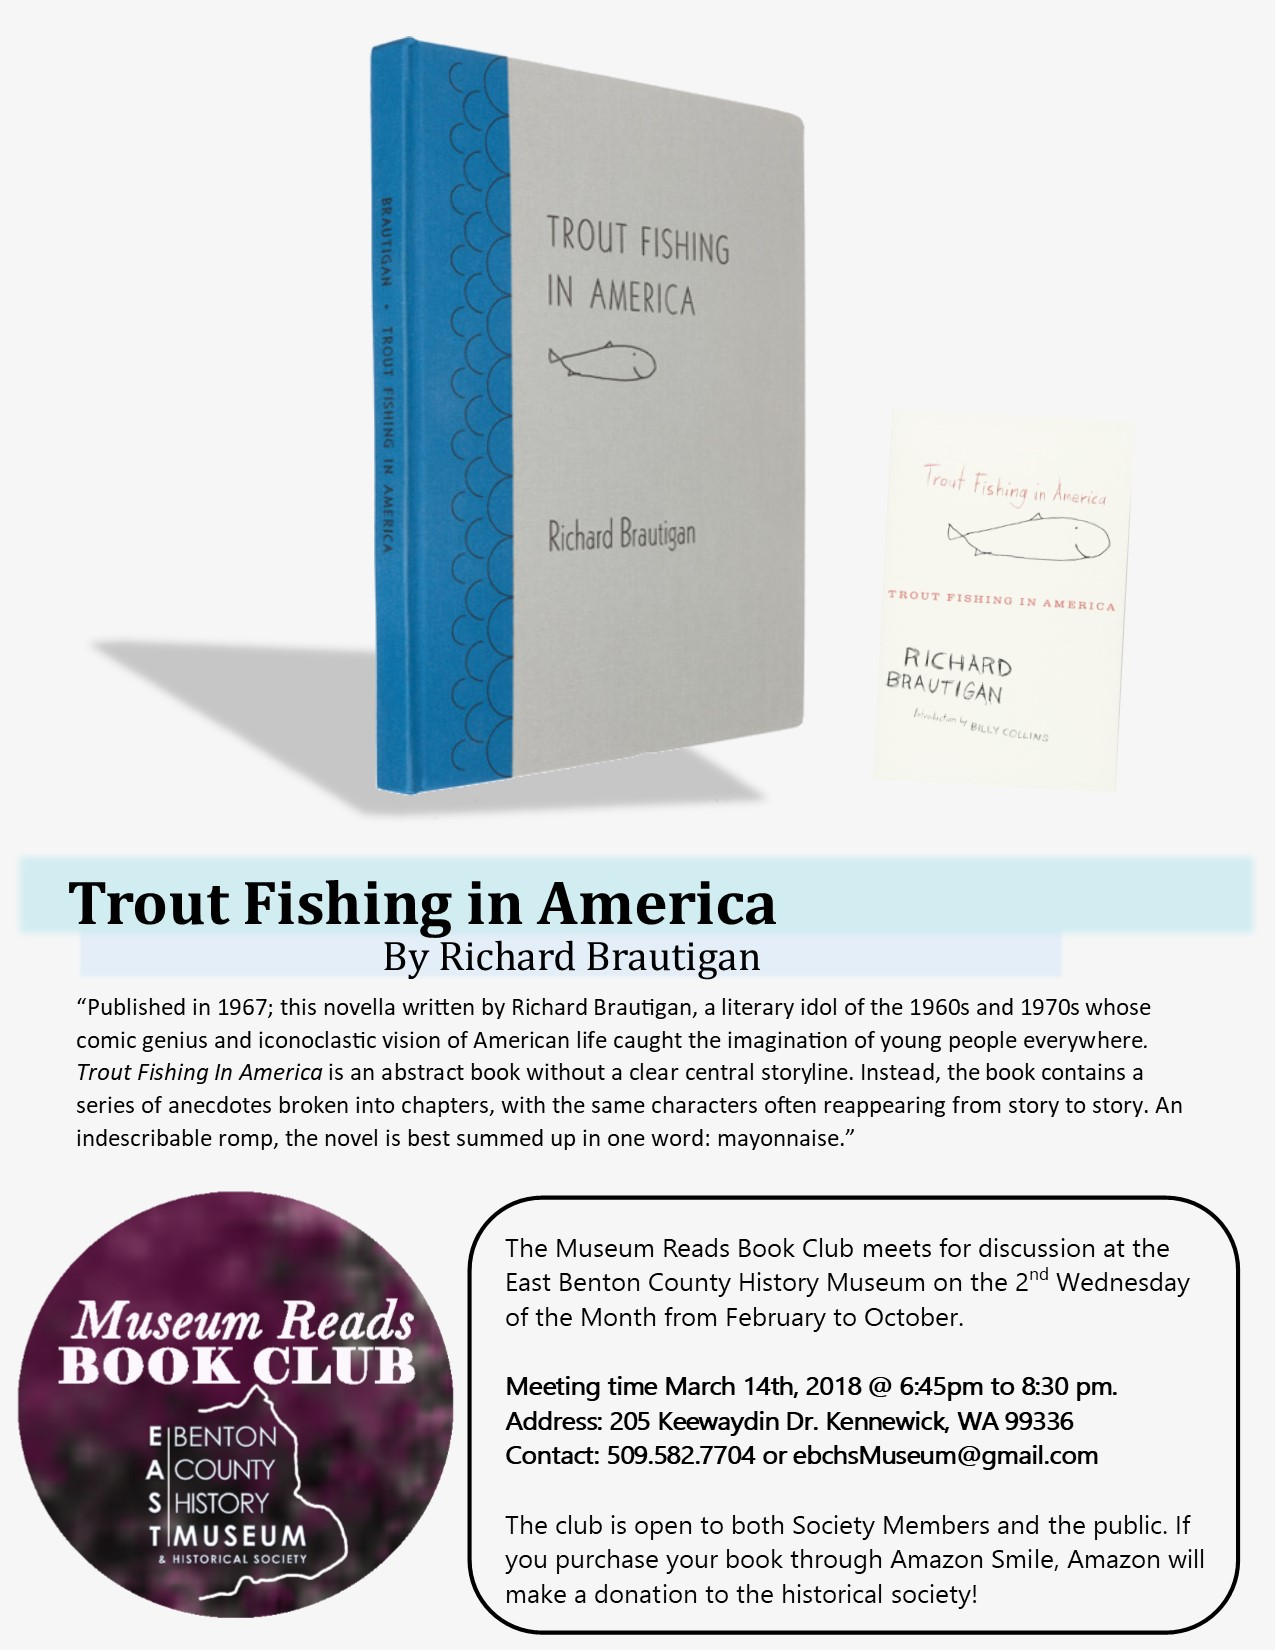 trout fishing in america poster.jpg